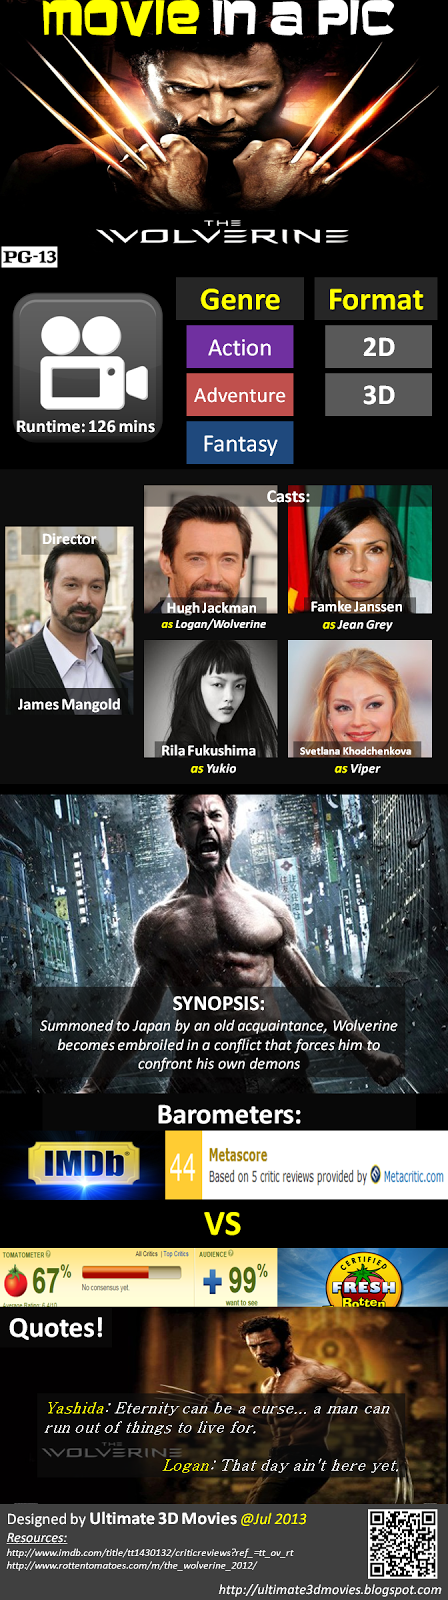 the wolverine movie in a pic infographic